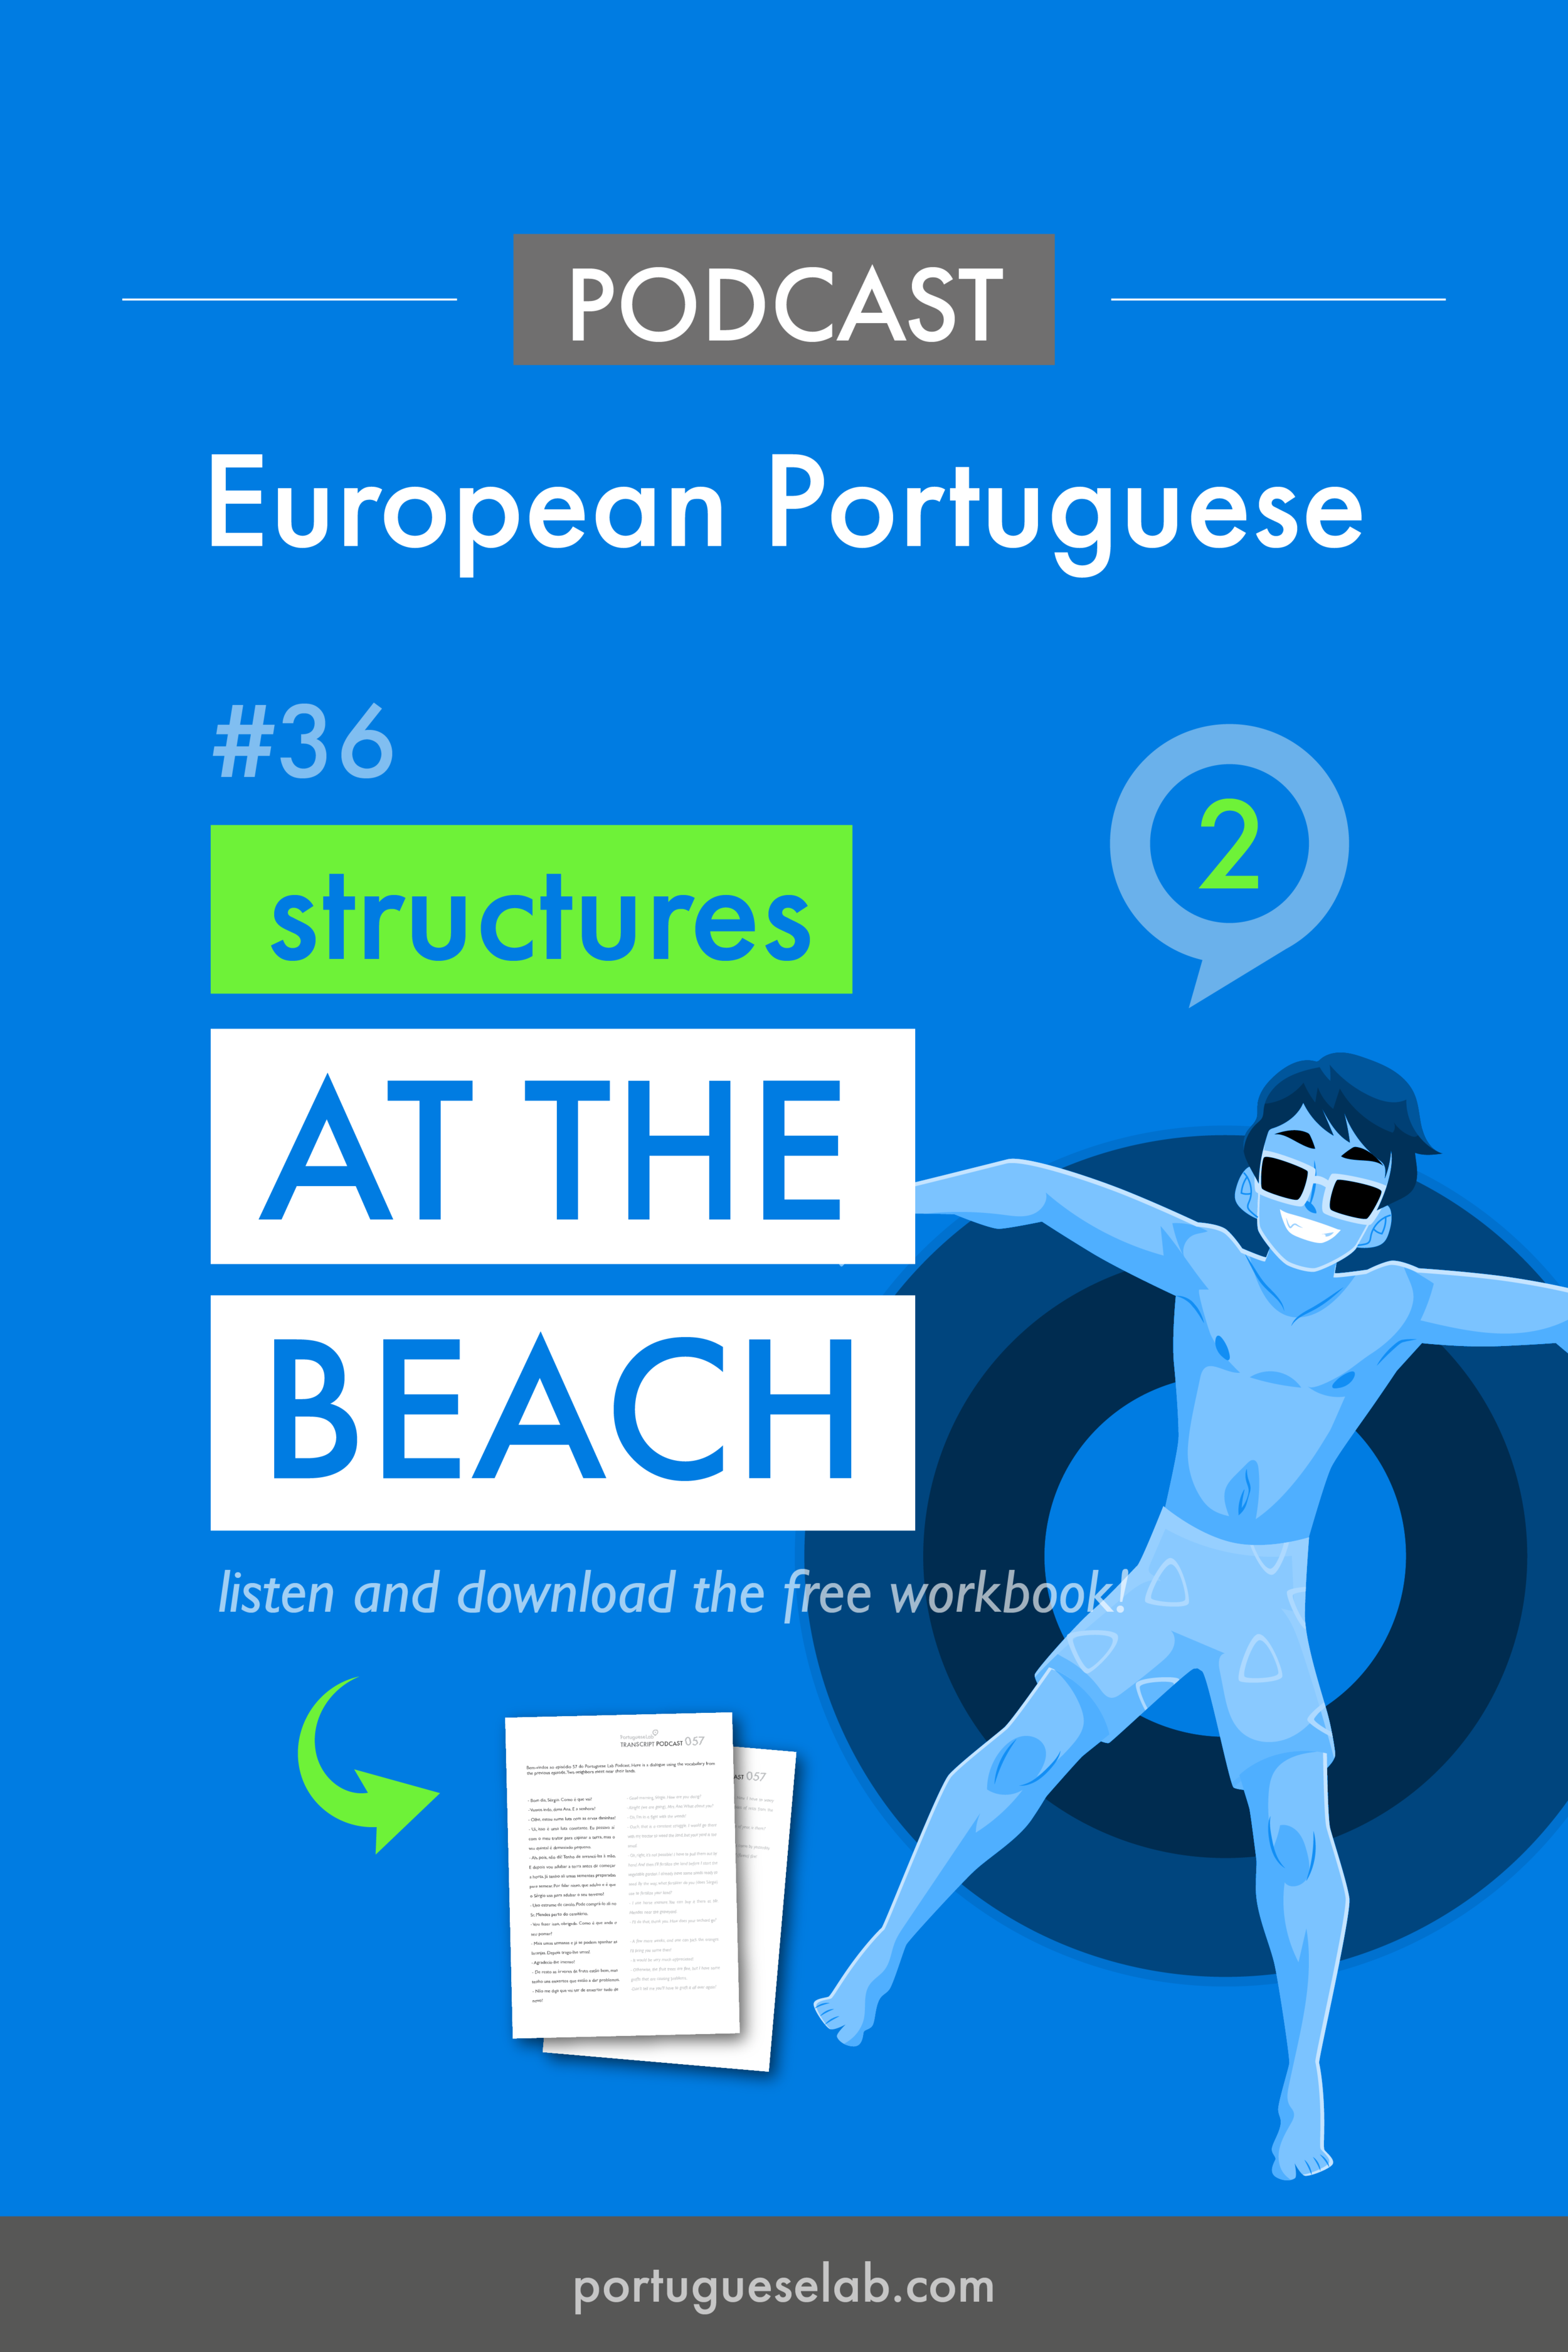 Portuguese Lab Podcast - European Portuguese - 36 - At the beach - structures.png